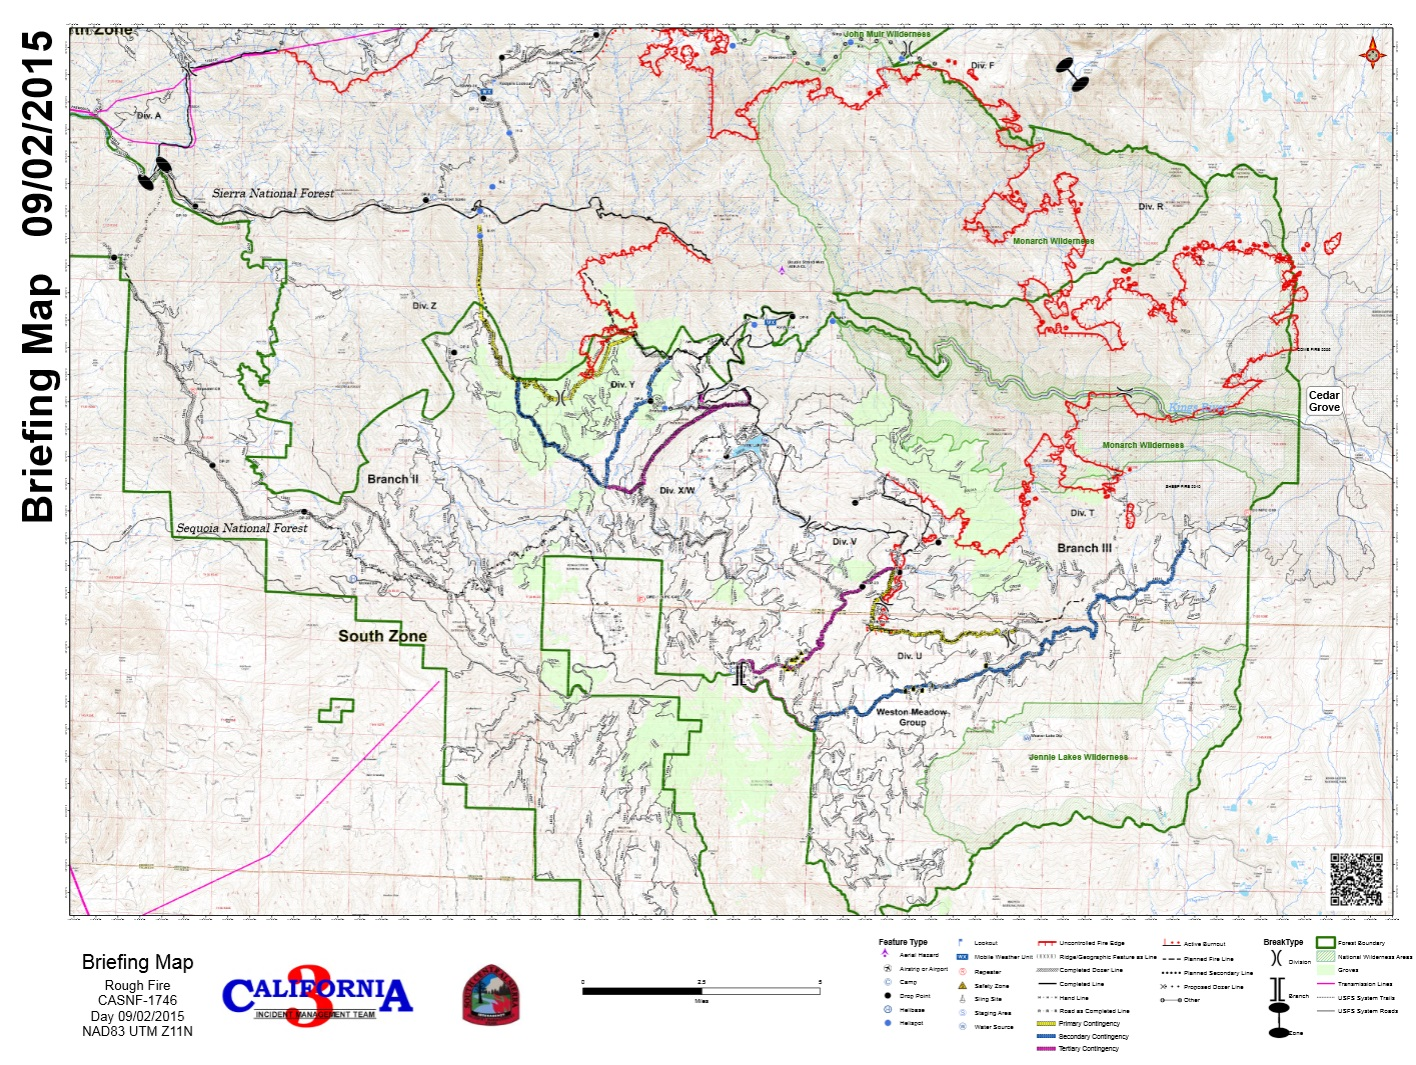 Rough fire briefing map southern half 9-2-15